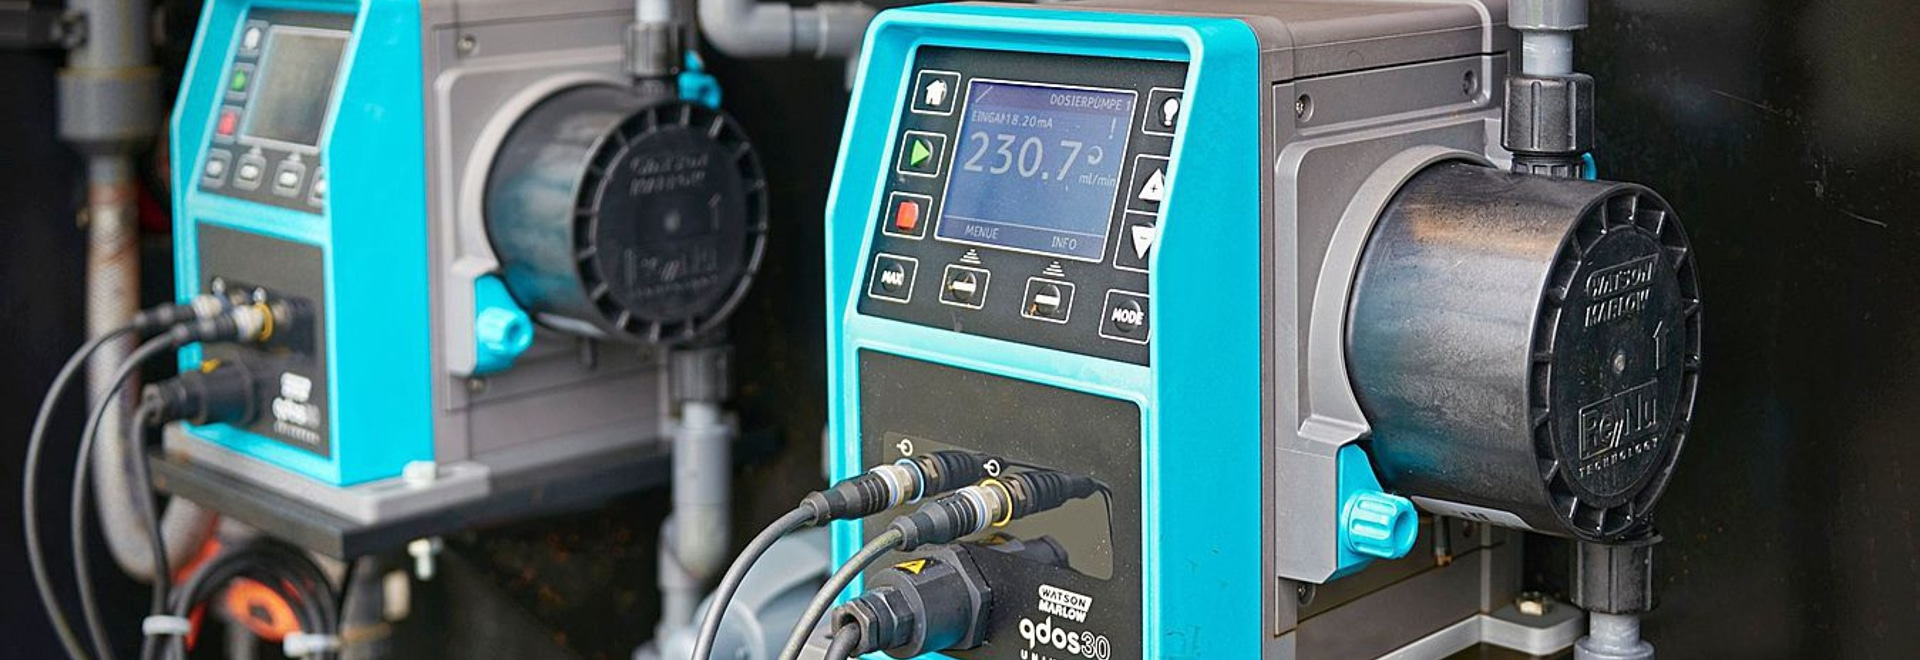 Qdos pump technology cuts maintenance time from 1.5 hours to just 5 minutes at effluent treatment plant